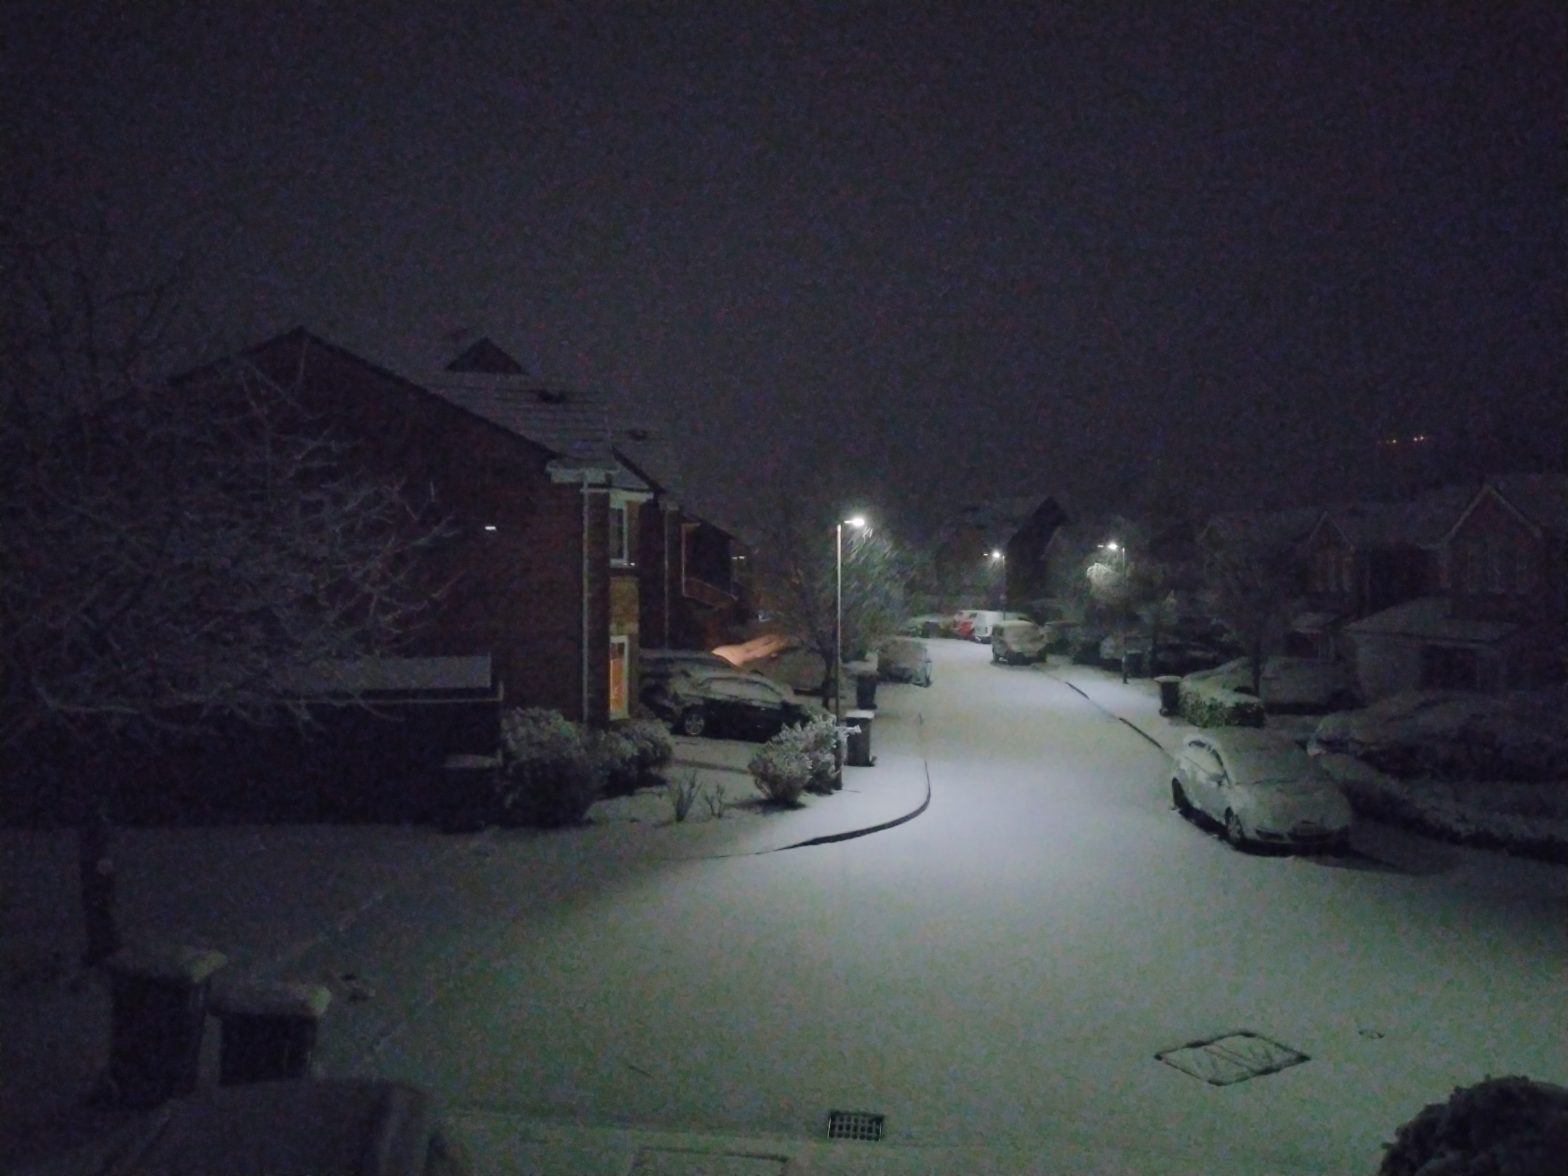 A snowy night on our street.